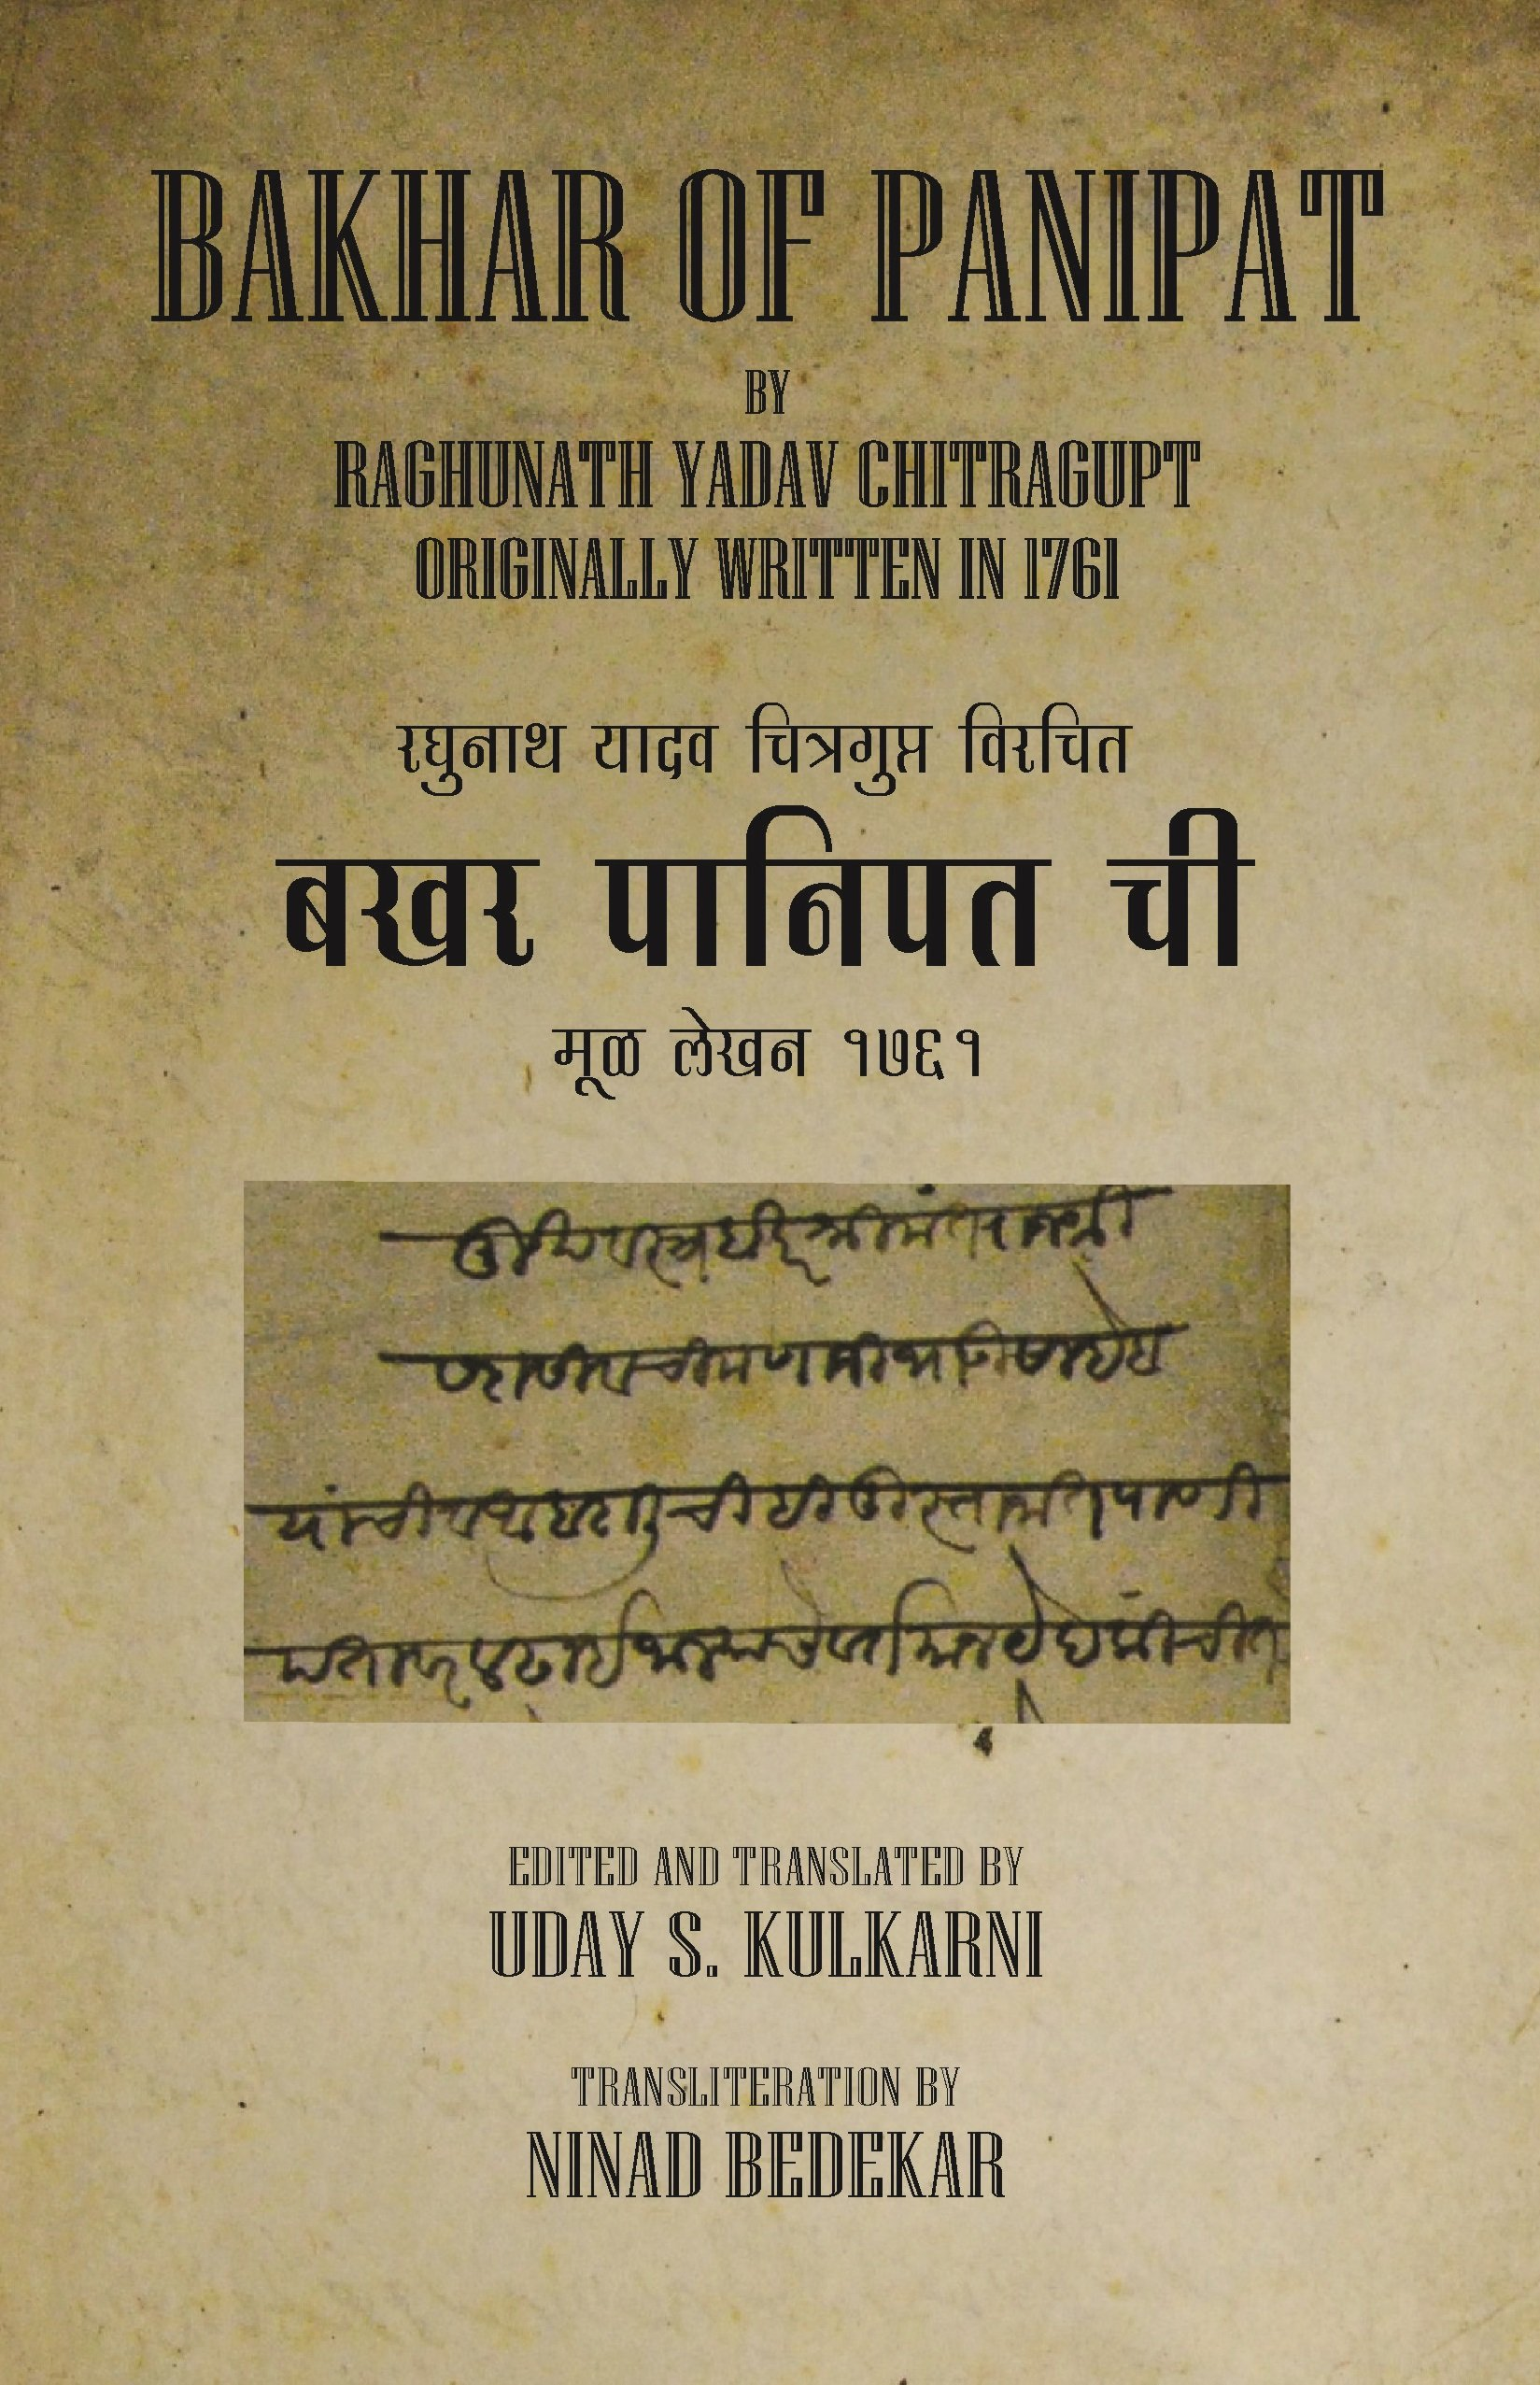 Buy BAKHAR OF PANIPAT Book Online at Low Prices in India